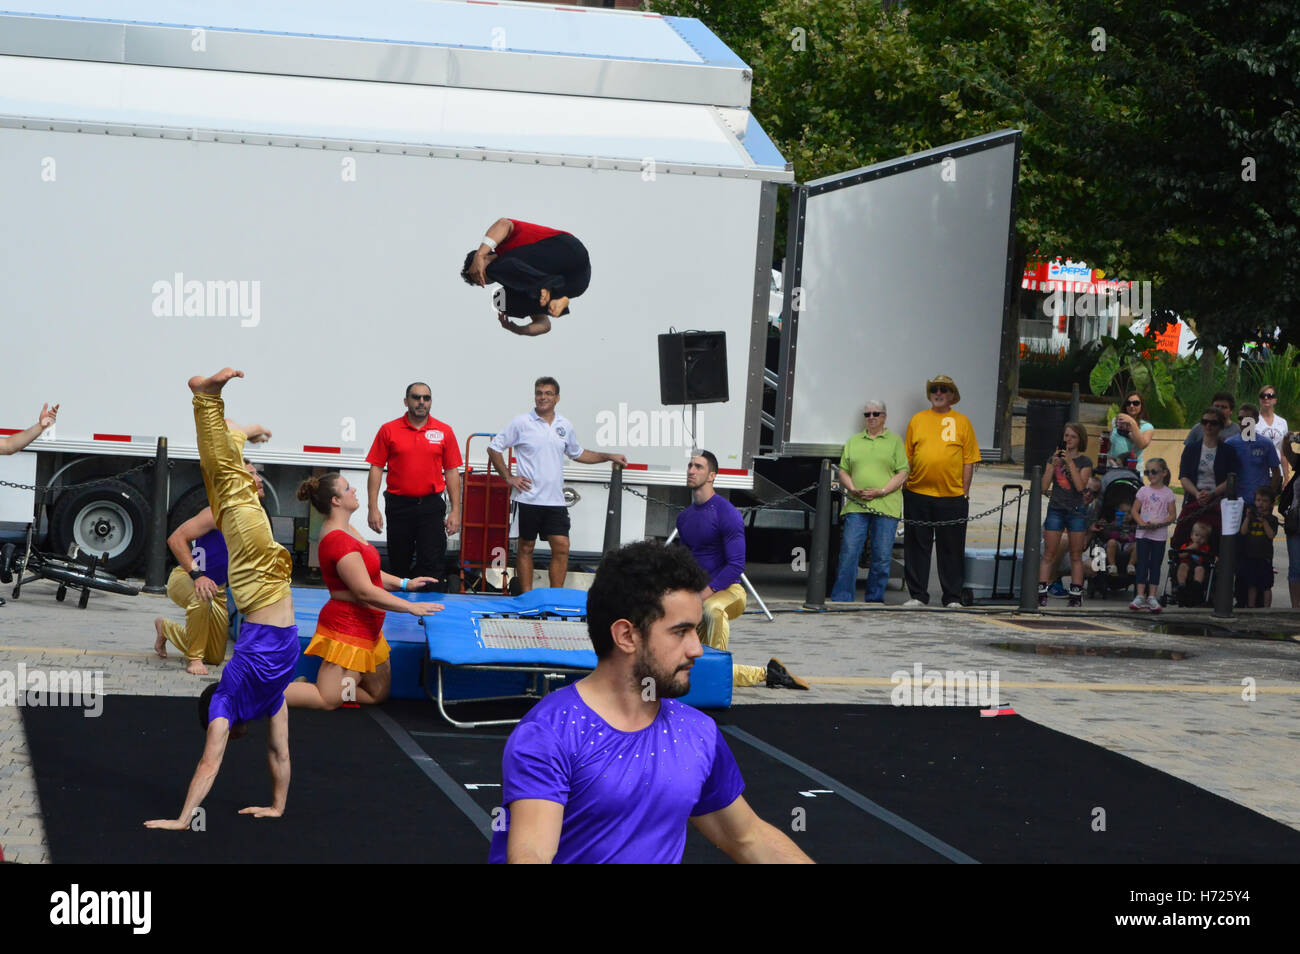 Circus Performers at Sweet corn & Blues Festival Stock Photo